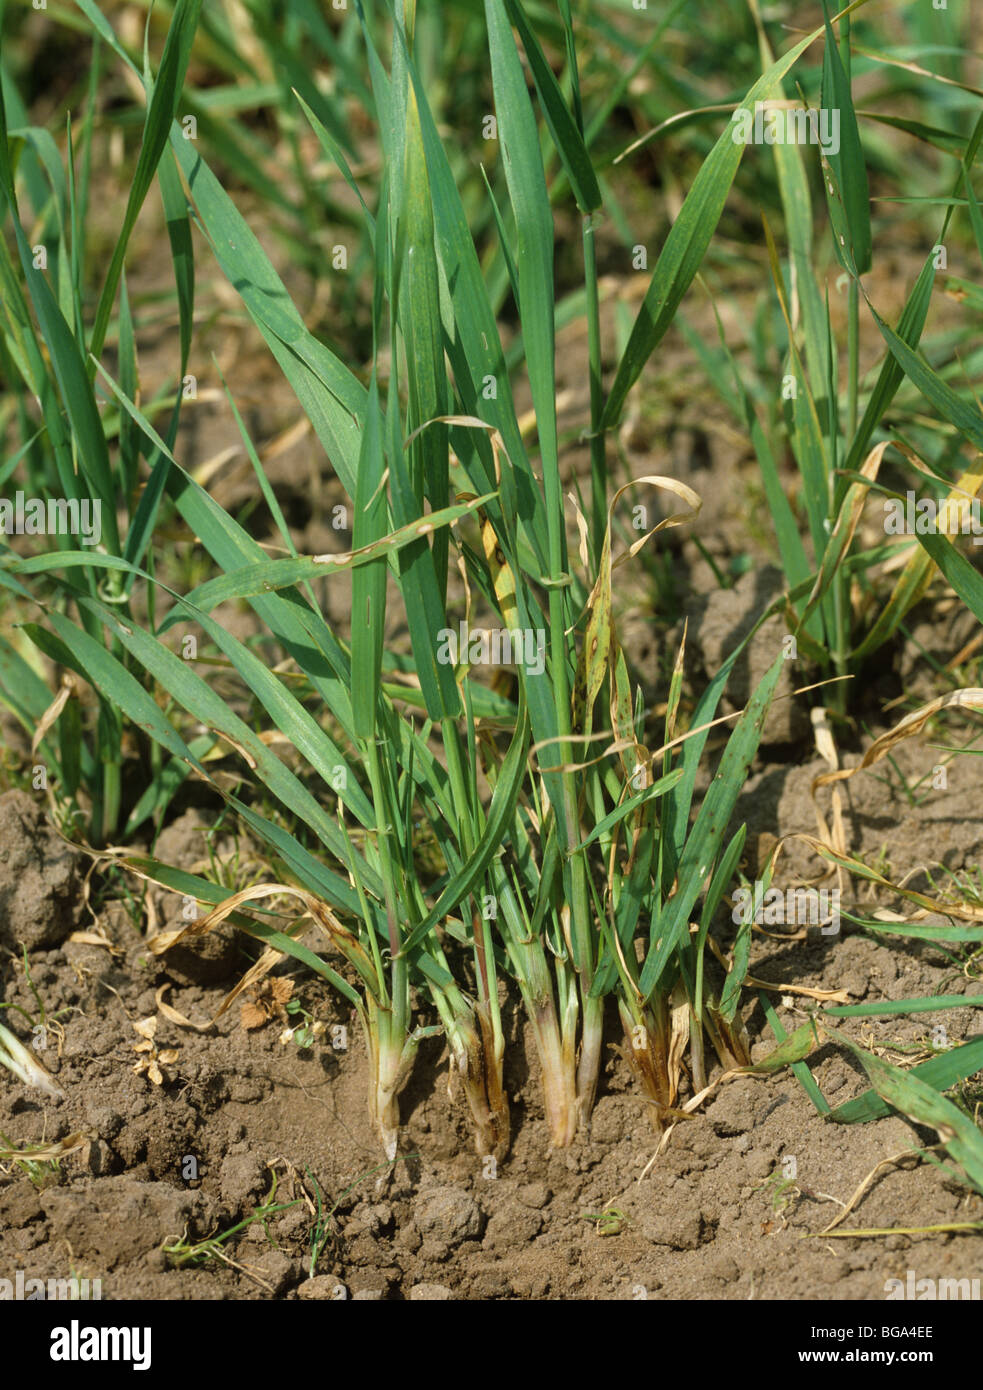 Common root rot (Cochliobolus sativus) browning at the bases of young barley plants - Stock Image